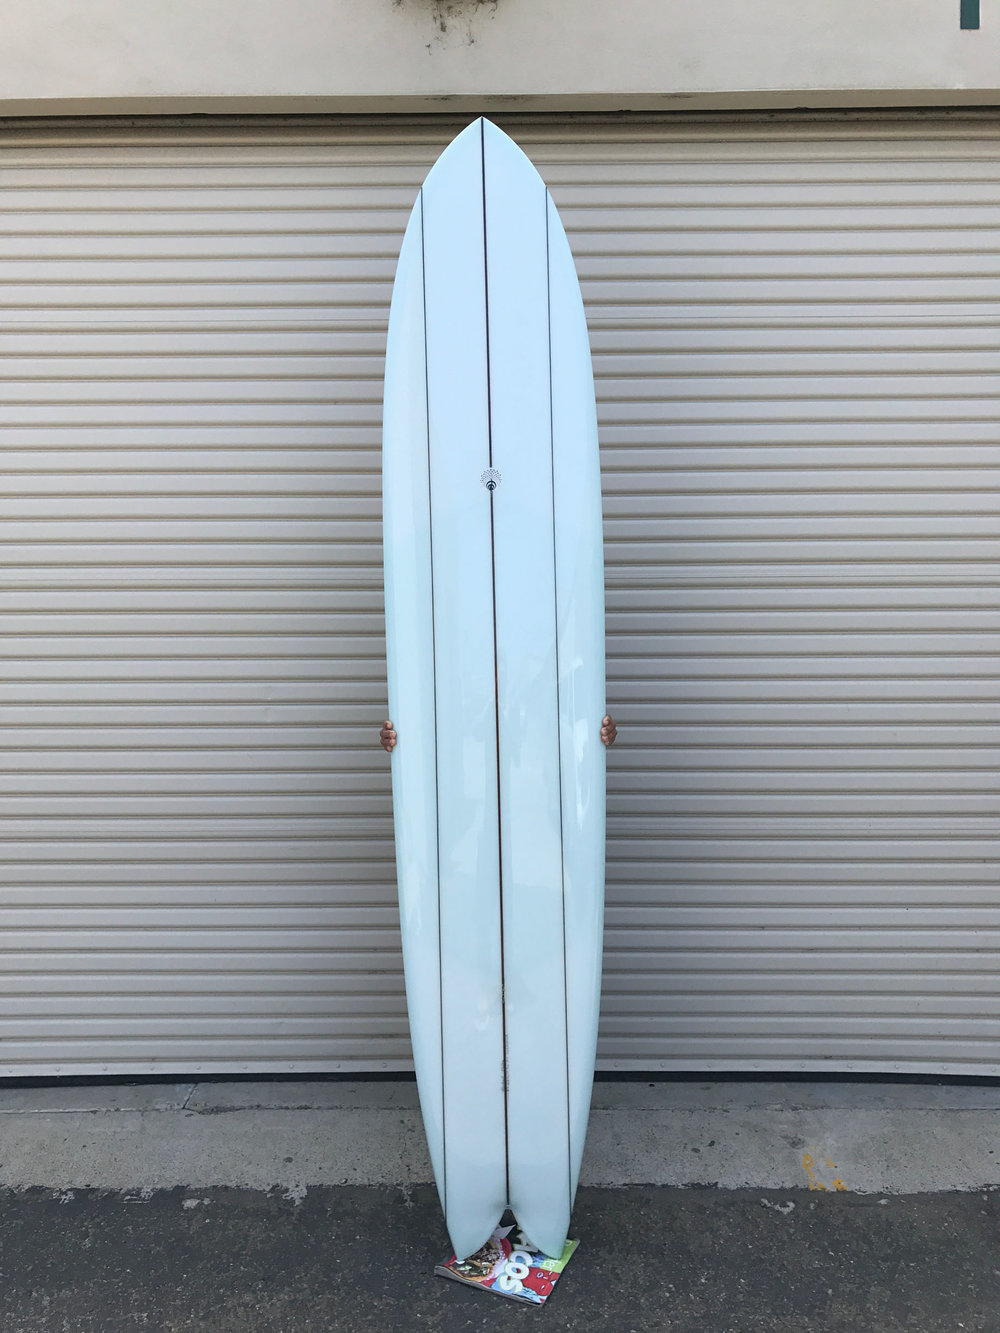 - This is my version of Skip's Fish Simmons. This board has a single to deep double concave exiting the the tail with a fair amount of V in the tail. For all sizes I keep the tail block at 10